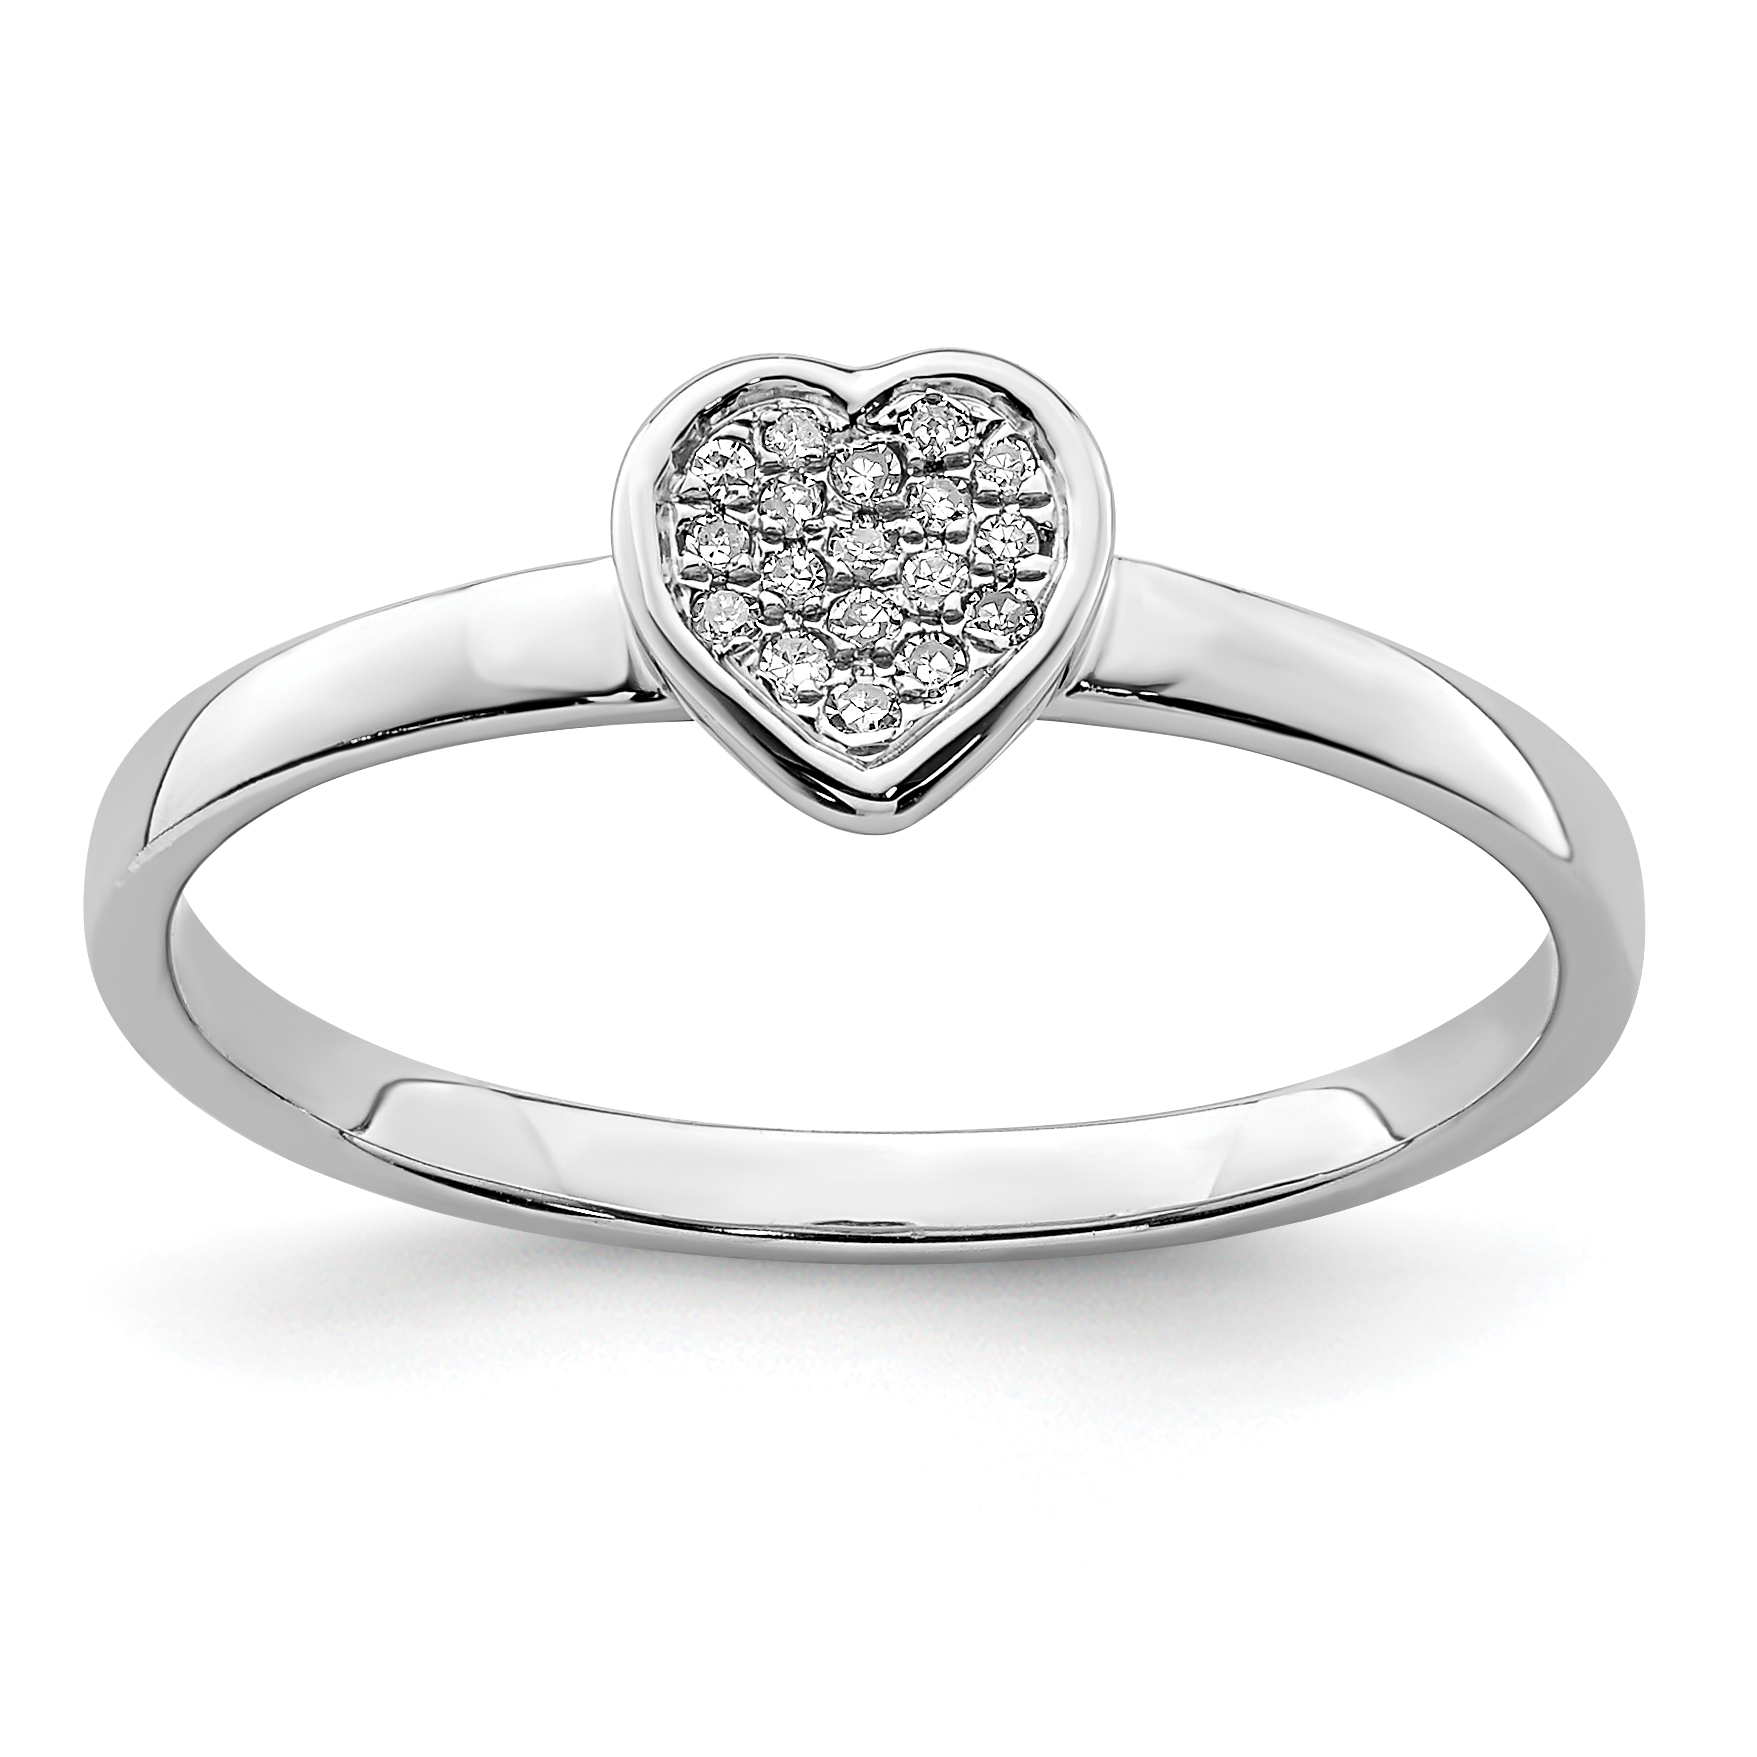 925 Sterling Silver White Diamond Stackable Band Ring Size 7.00 Fine Jewelry Gifts For Women For Her - image 2 of 2